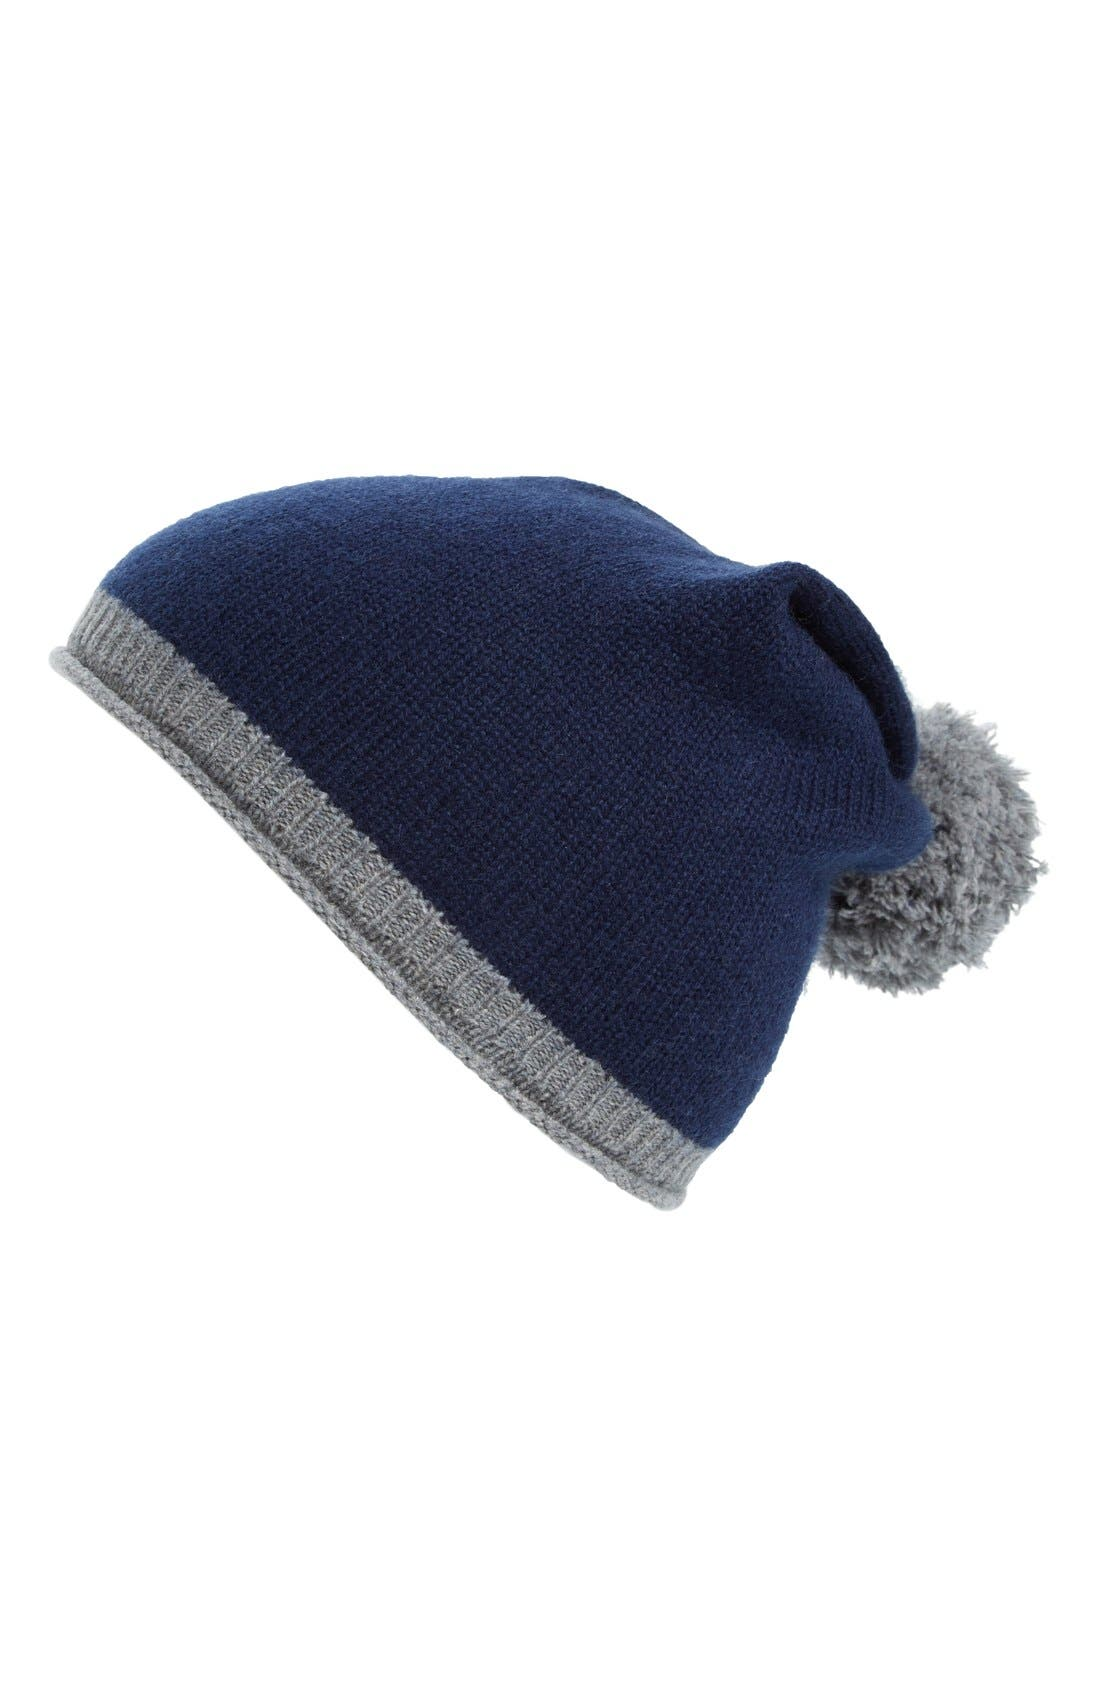 Alternate Image 1 Selected - Halogen® Slouchy Pom Beanie